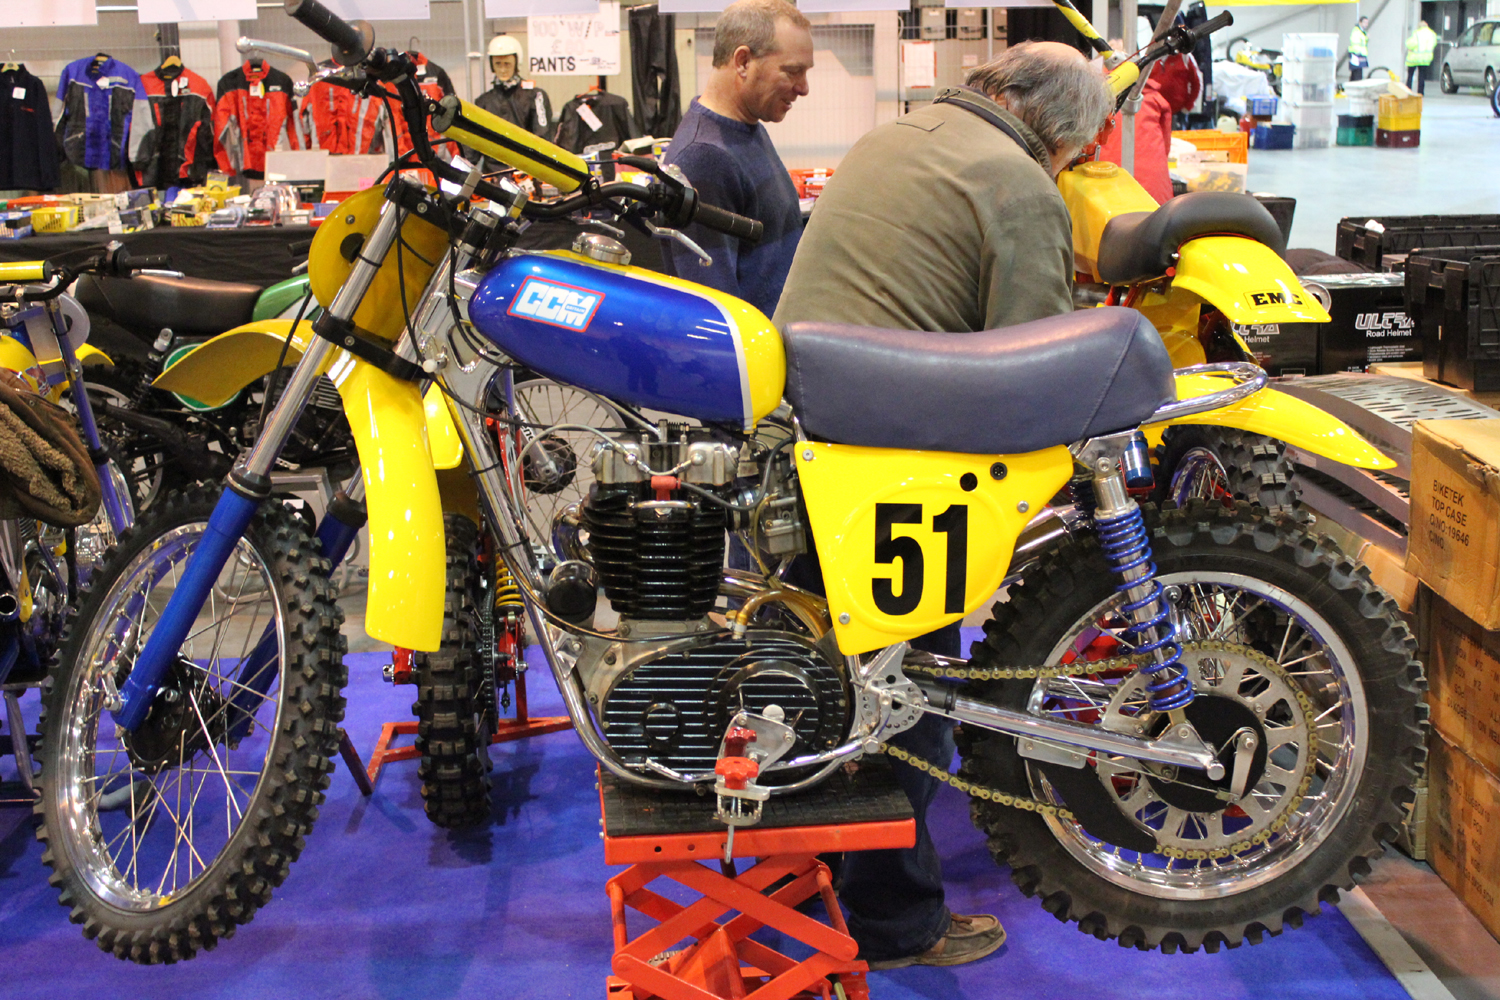 classicdirtbikerider.com-photo by Mr J-2015 Telford classic dirt bike show-CCM SCRAMBLER-2